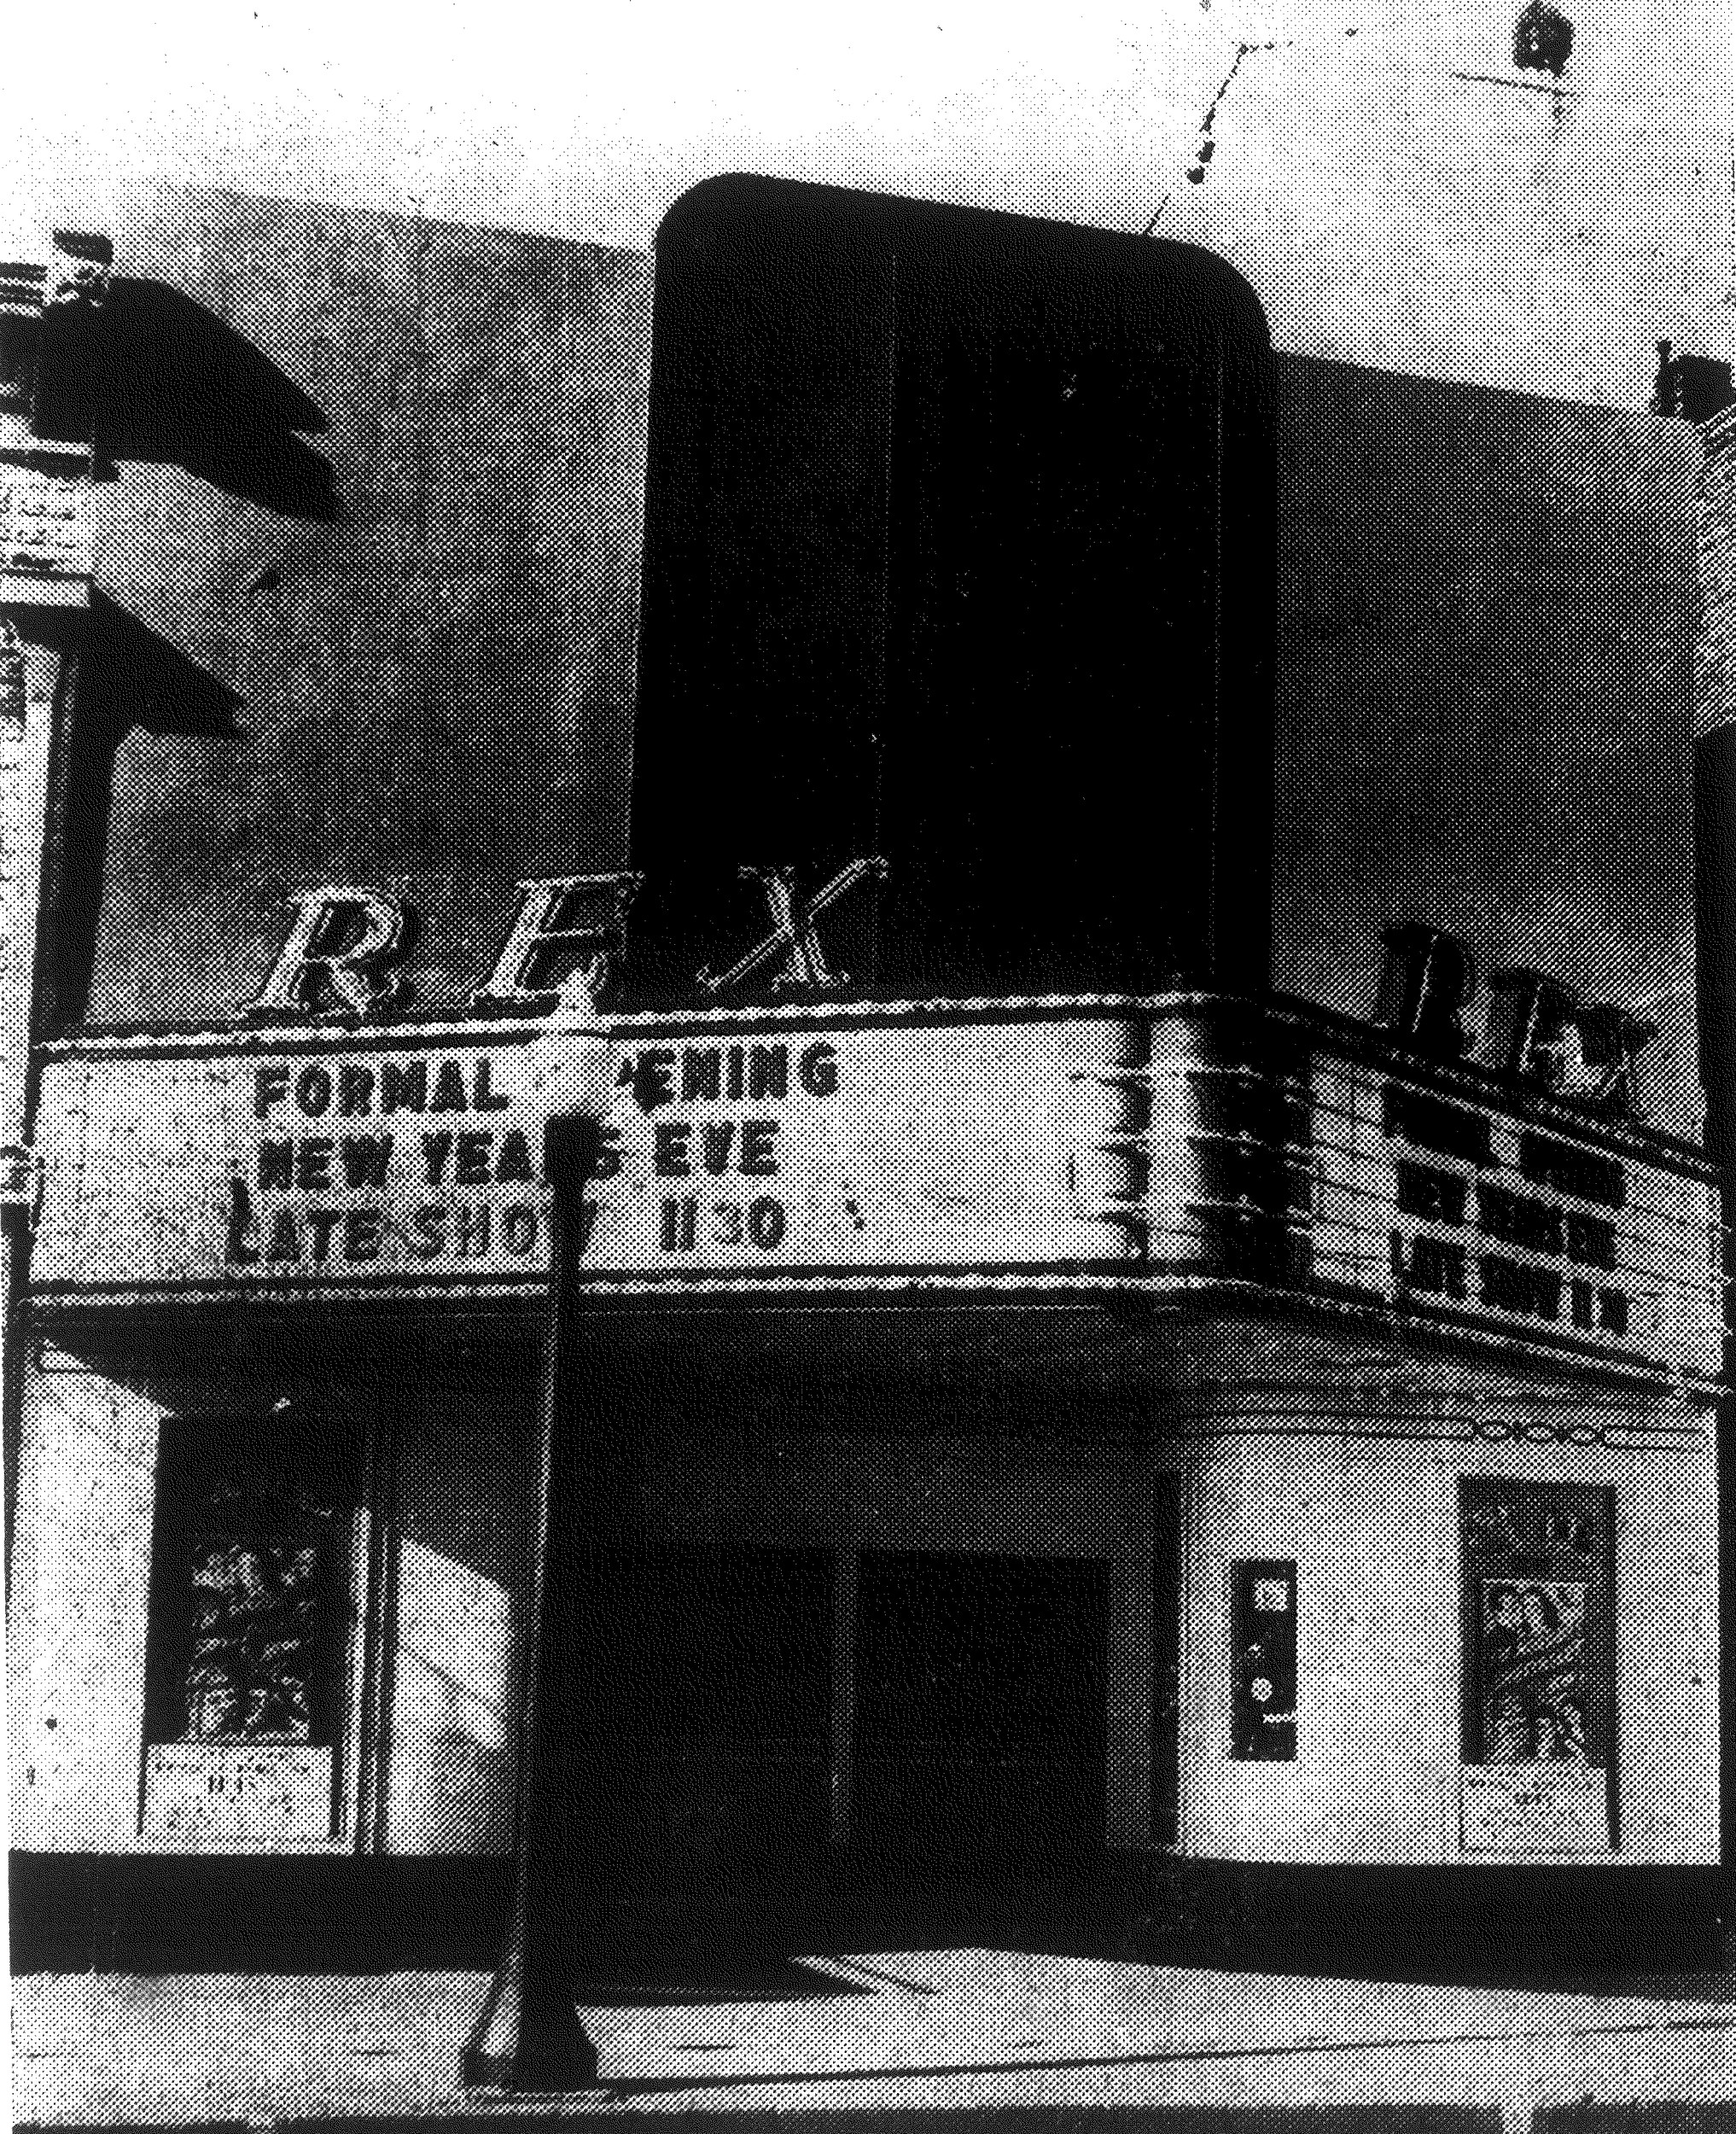 The exterior of the newly rebuilt and remodelled Rex Theater is shown the day of its formal opening on Dec. 31, 1940. The front is constructed of porcelain enamel, a beautiful and enduring material being used for the first time in South Carolina for a theater front.